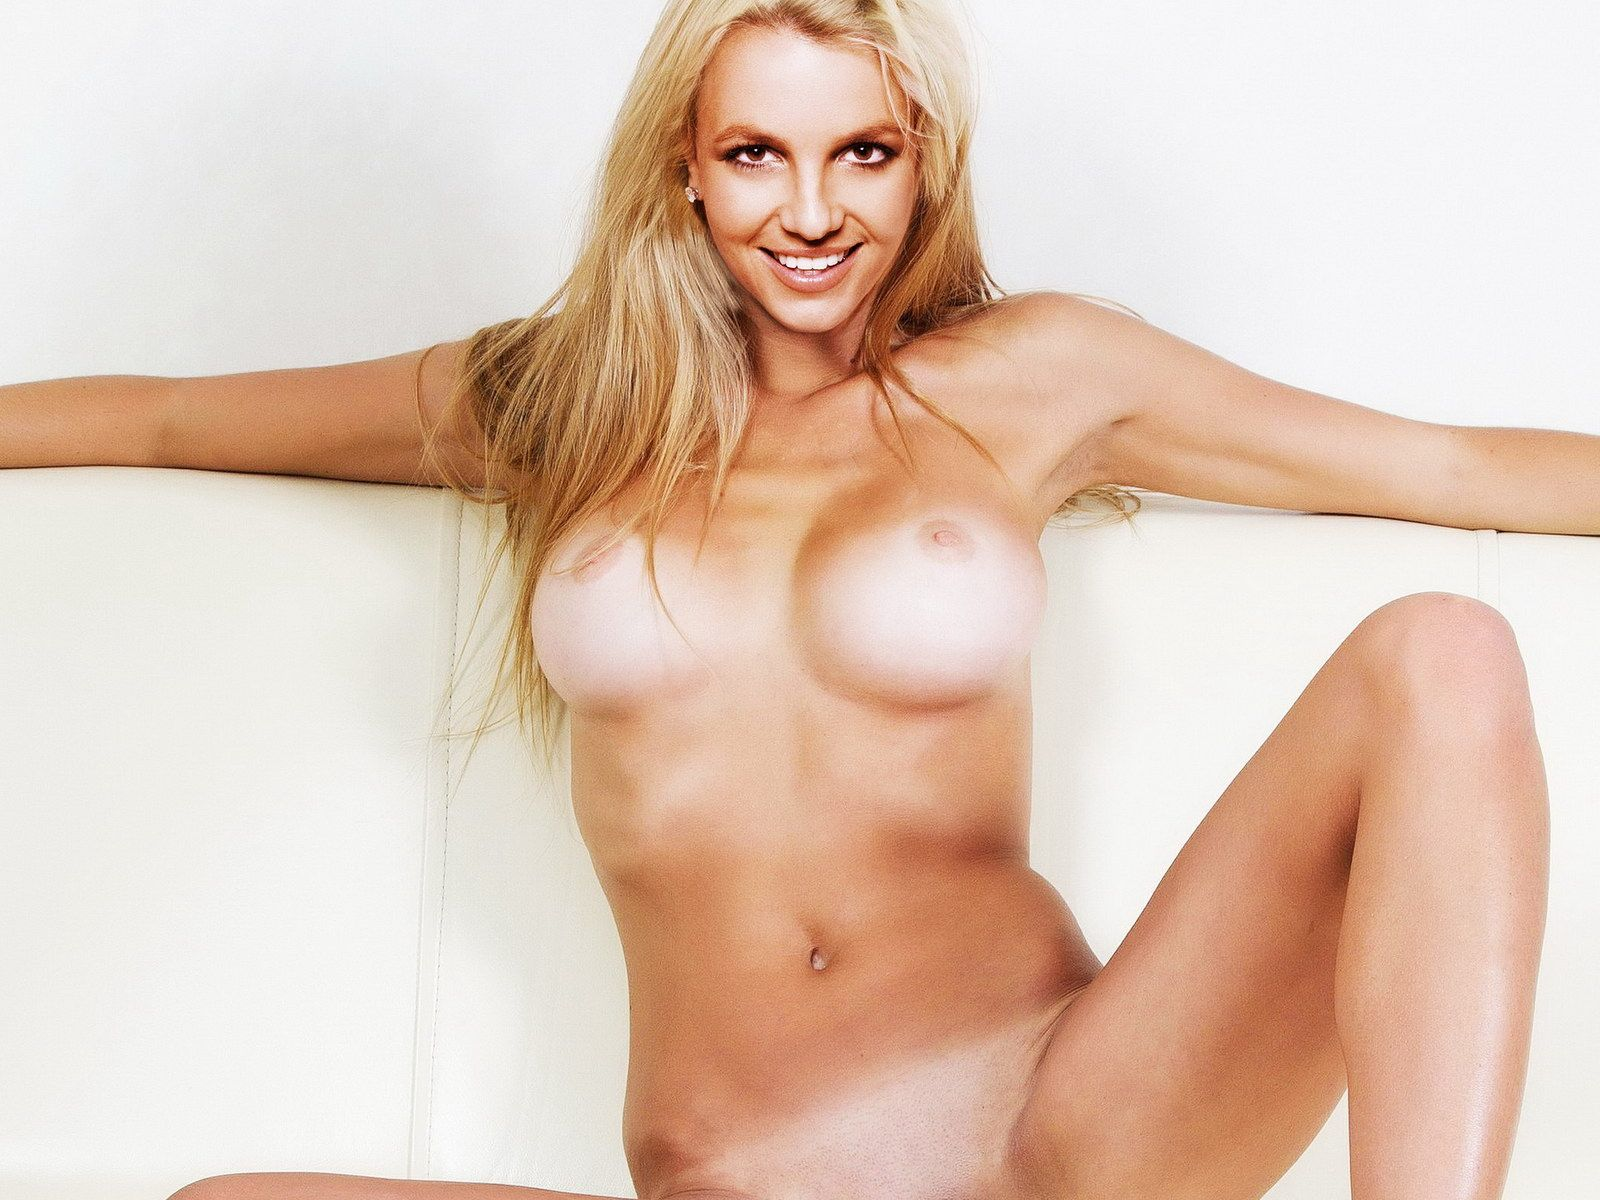 brittney spears playboy nude